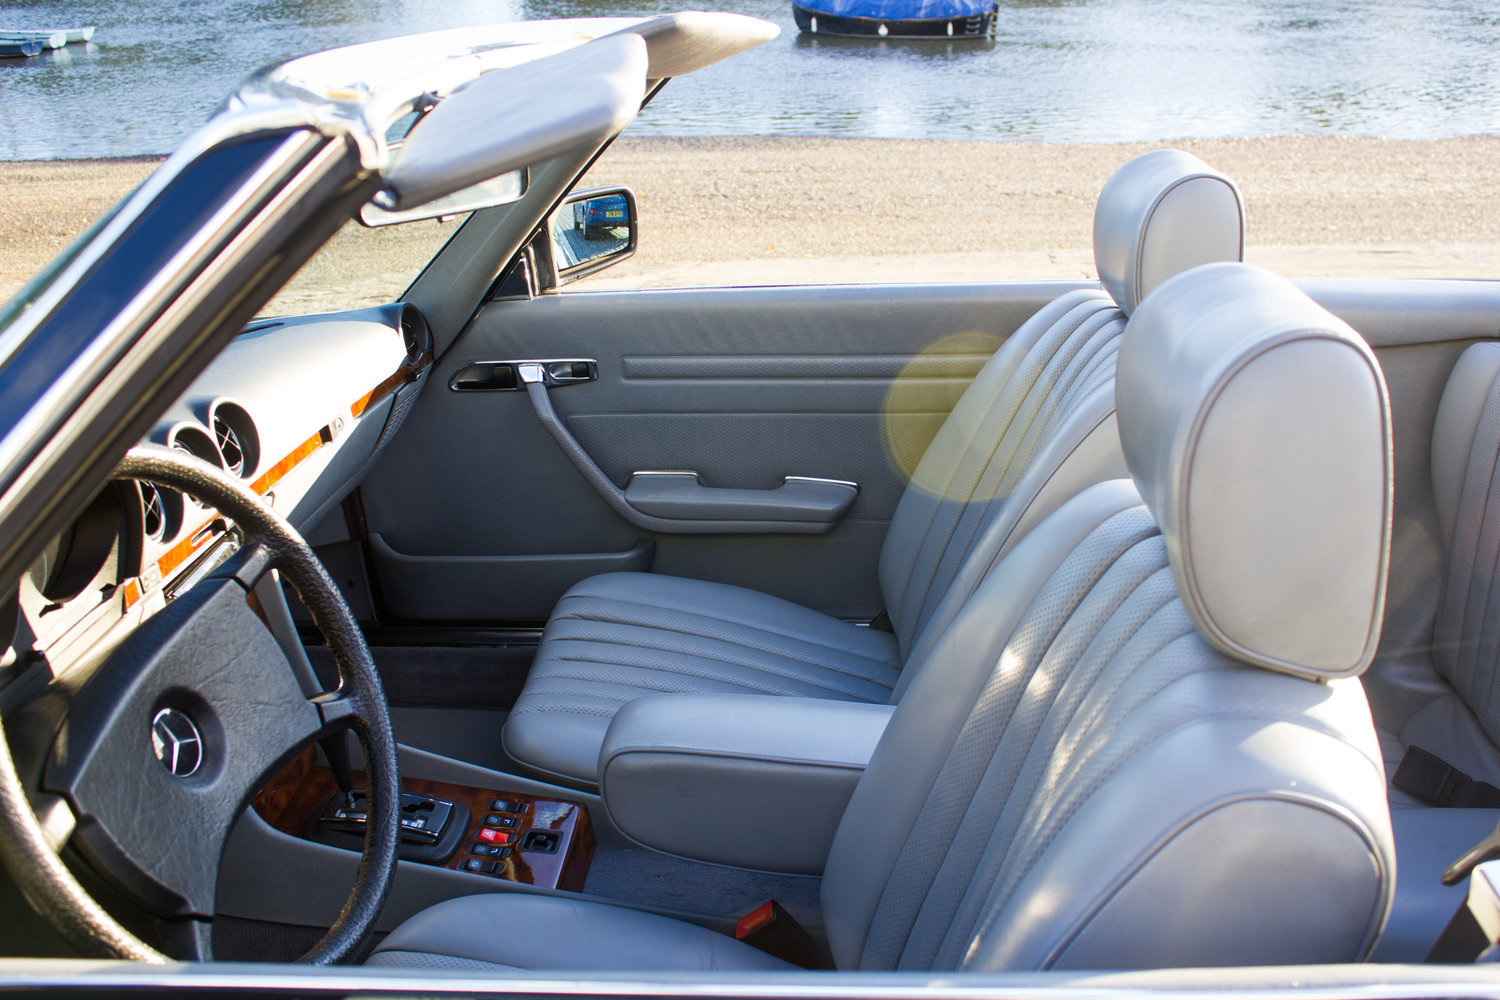 1985 Mercedes-Benz 500SL - LHD, AC, Heated Seats, 43k Miles For Sale (picture 4 of 6)